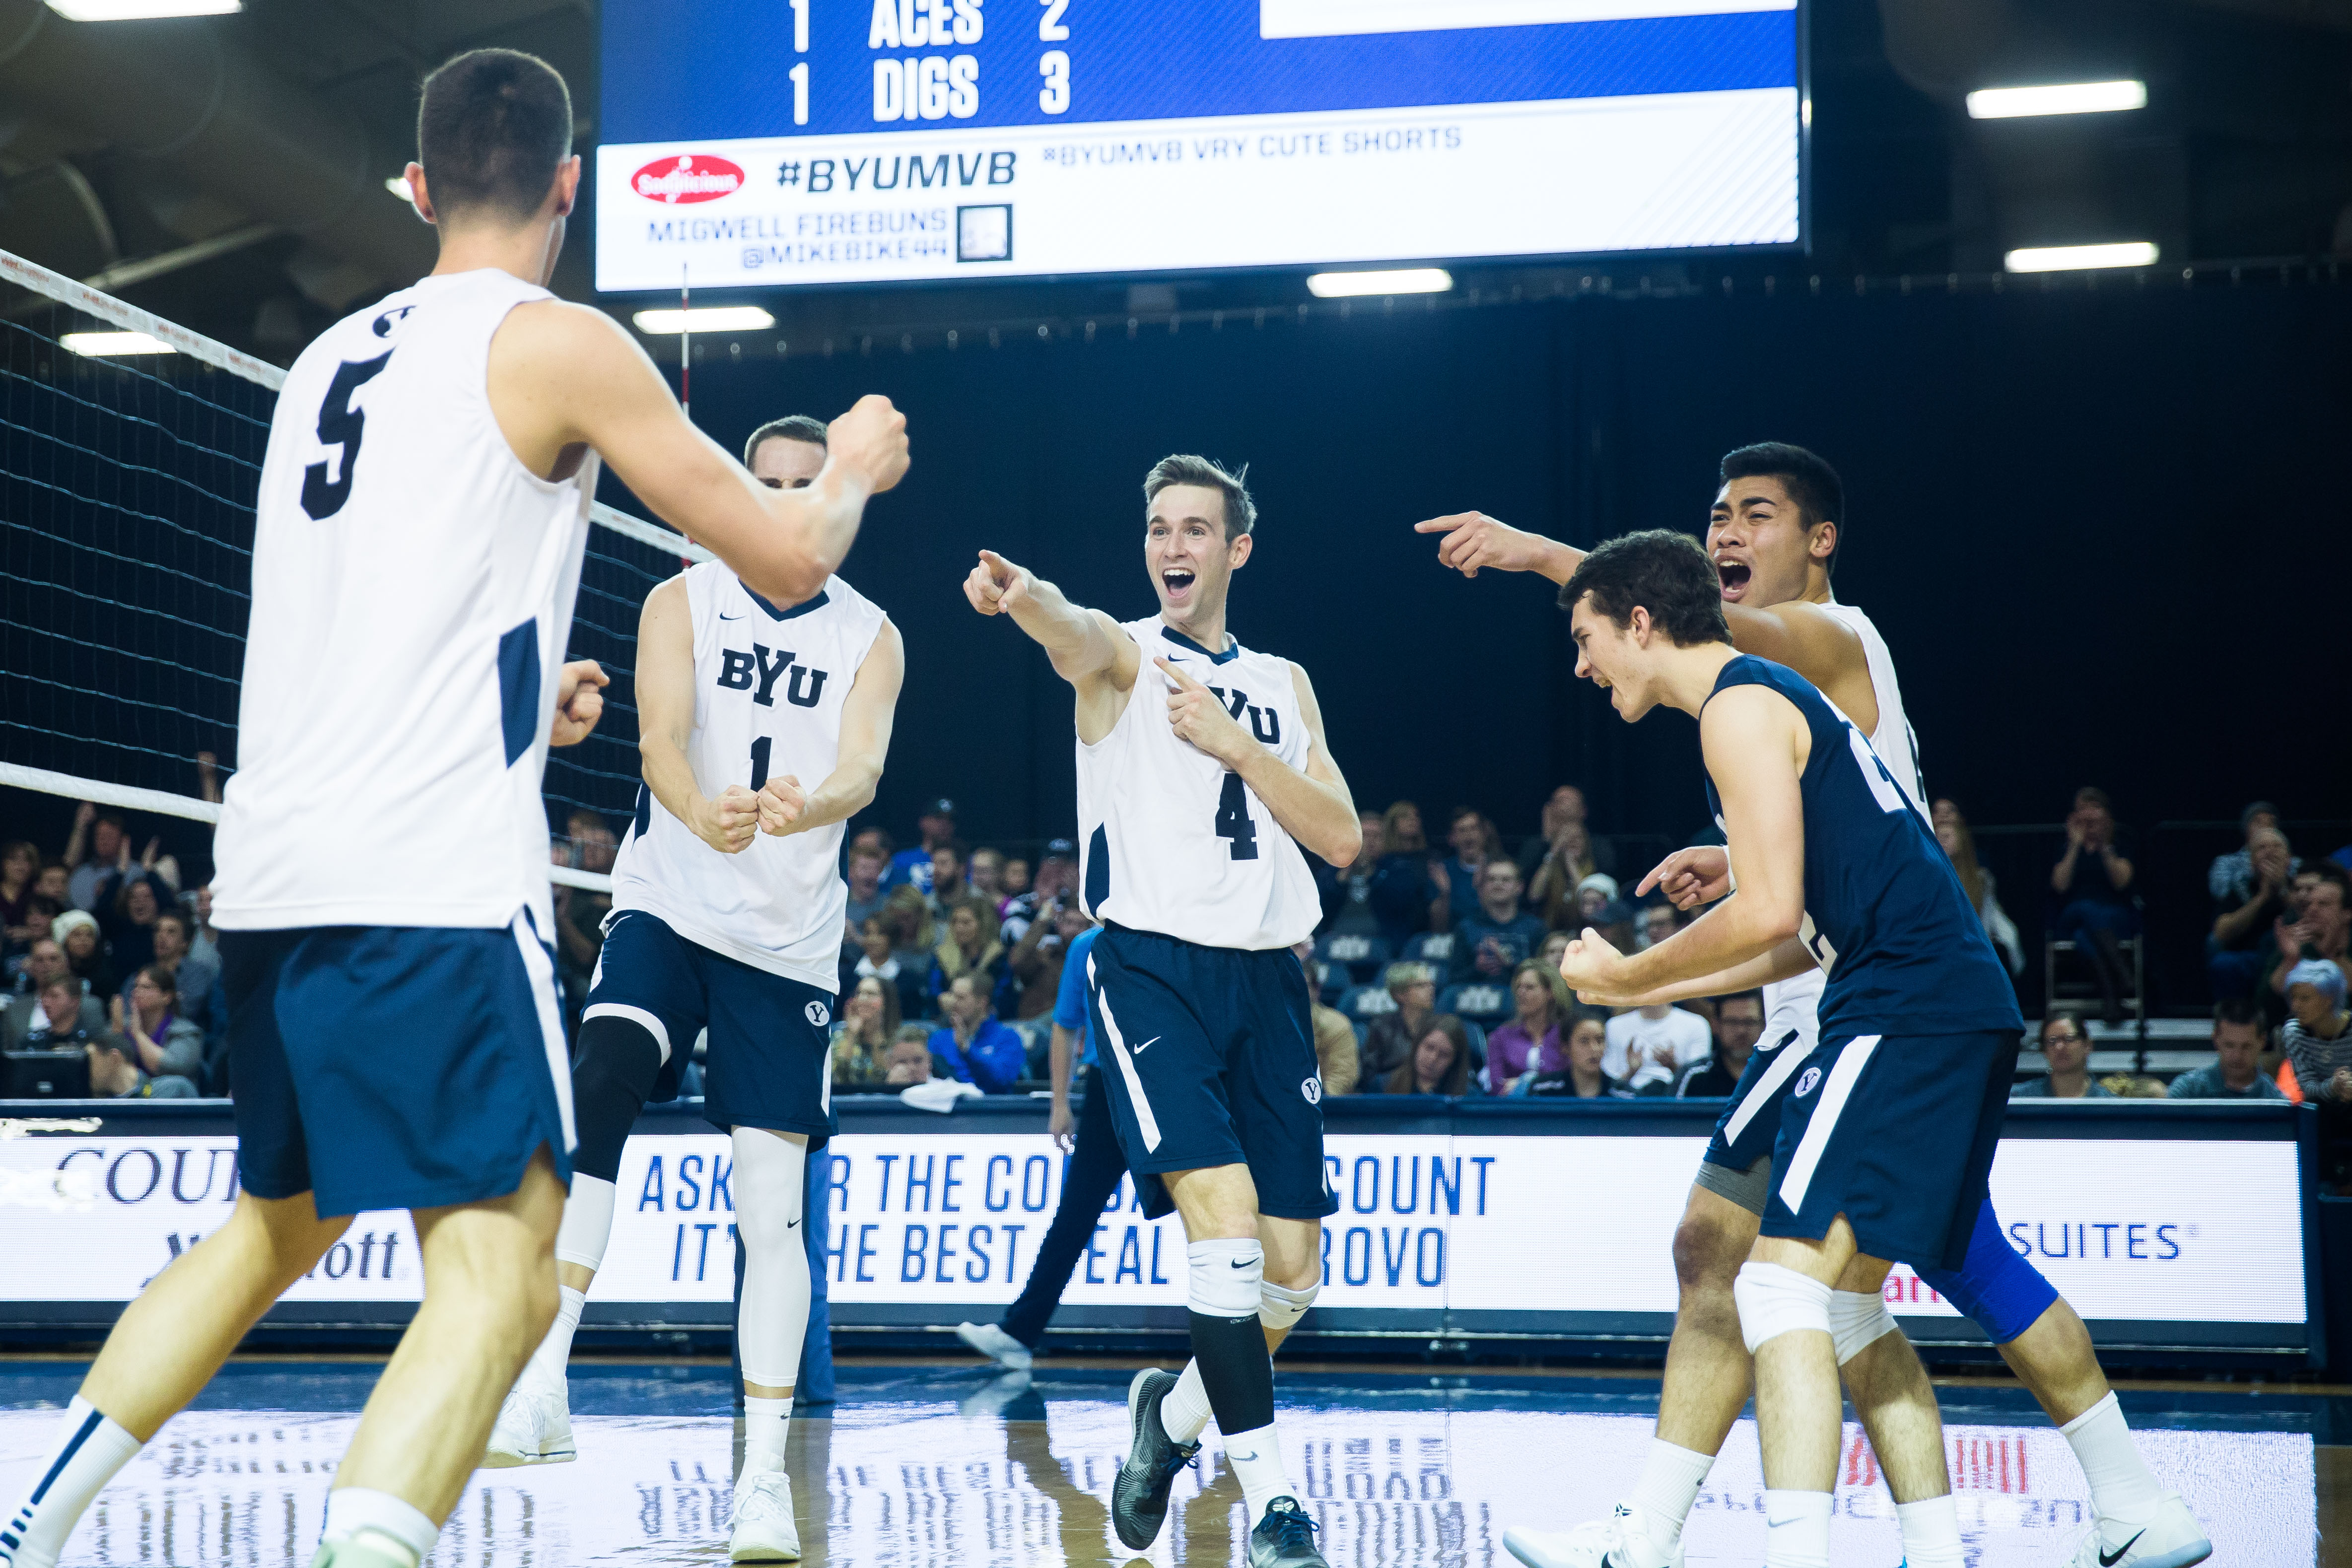 BYU men's volleyball preparing for big 2017 season - The ...